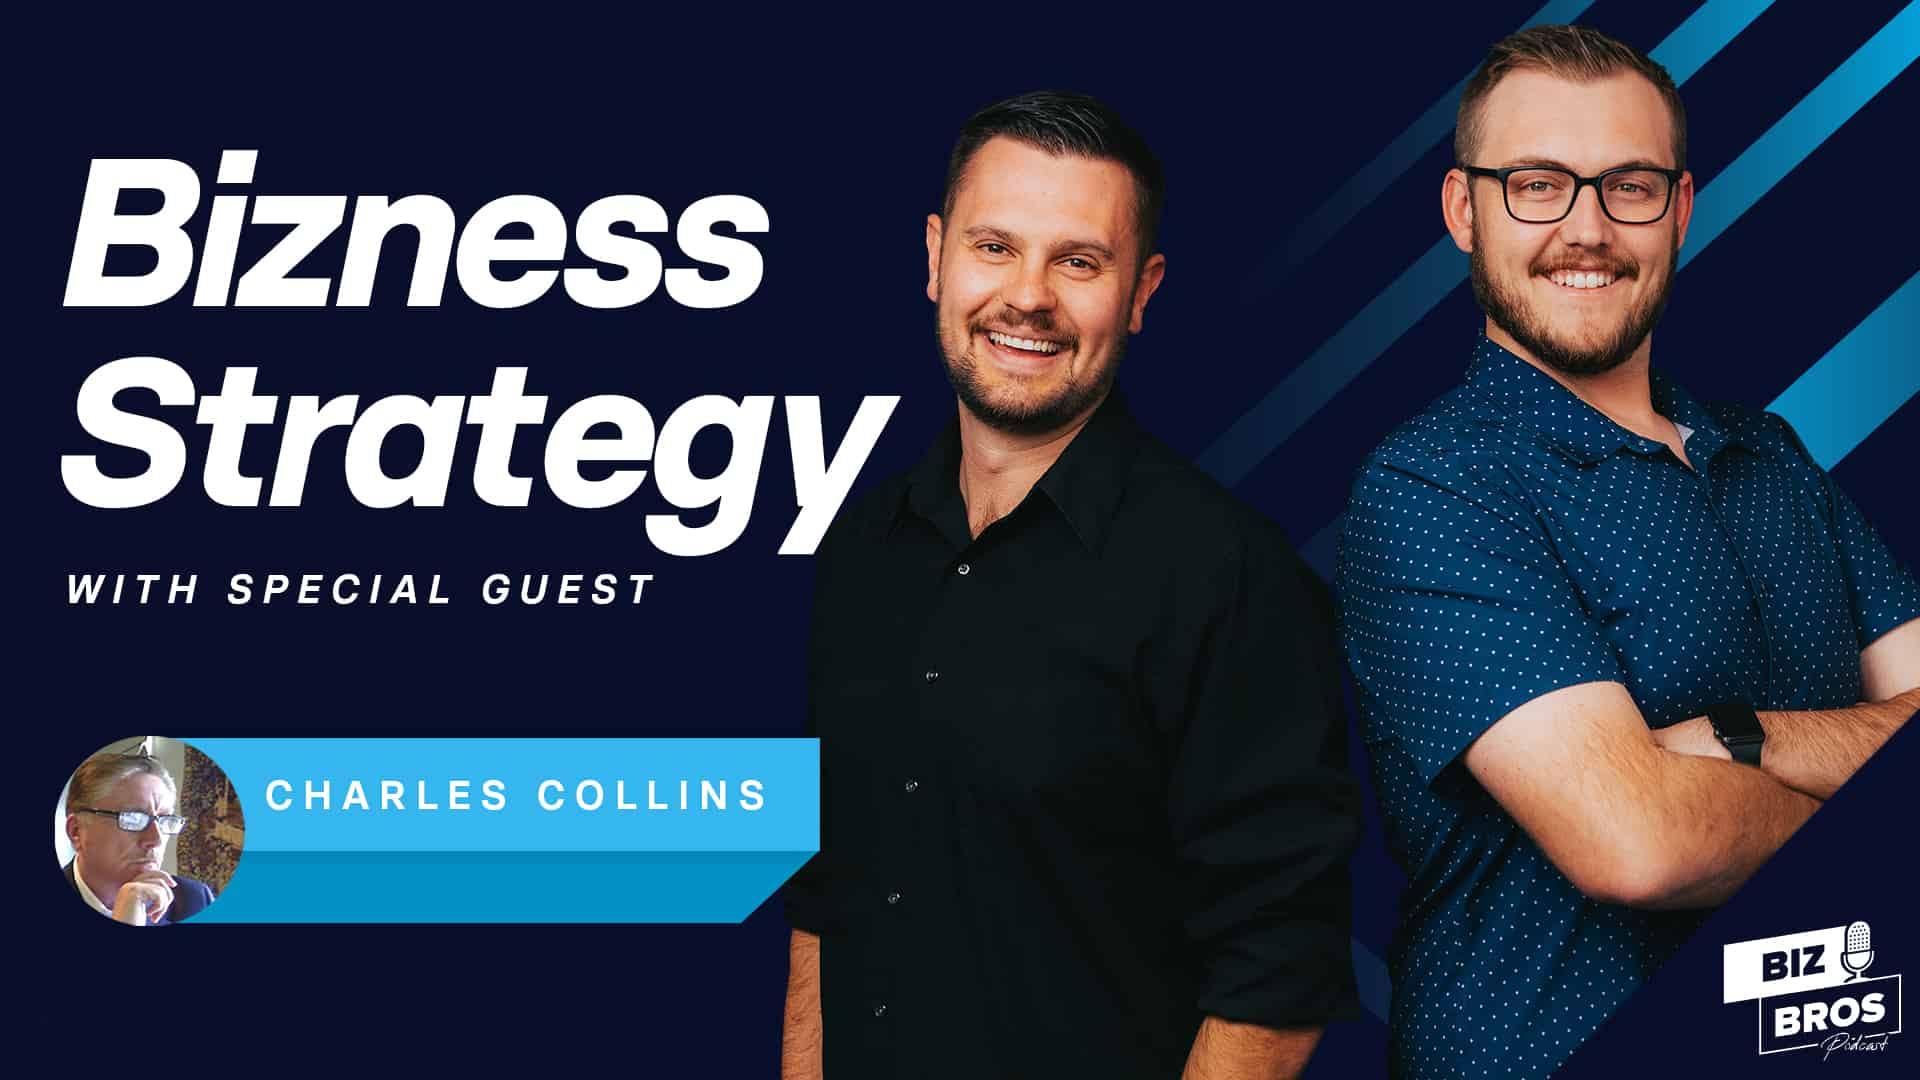 The 3 Principles and Components of Improving Your Life with Charles Collins